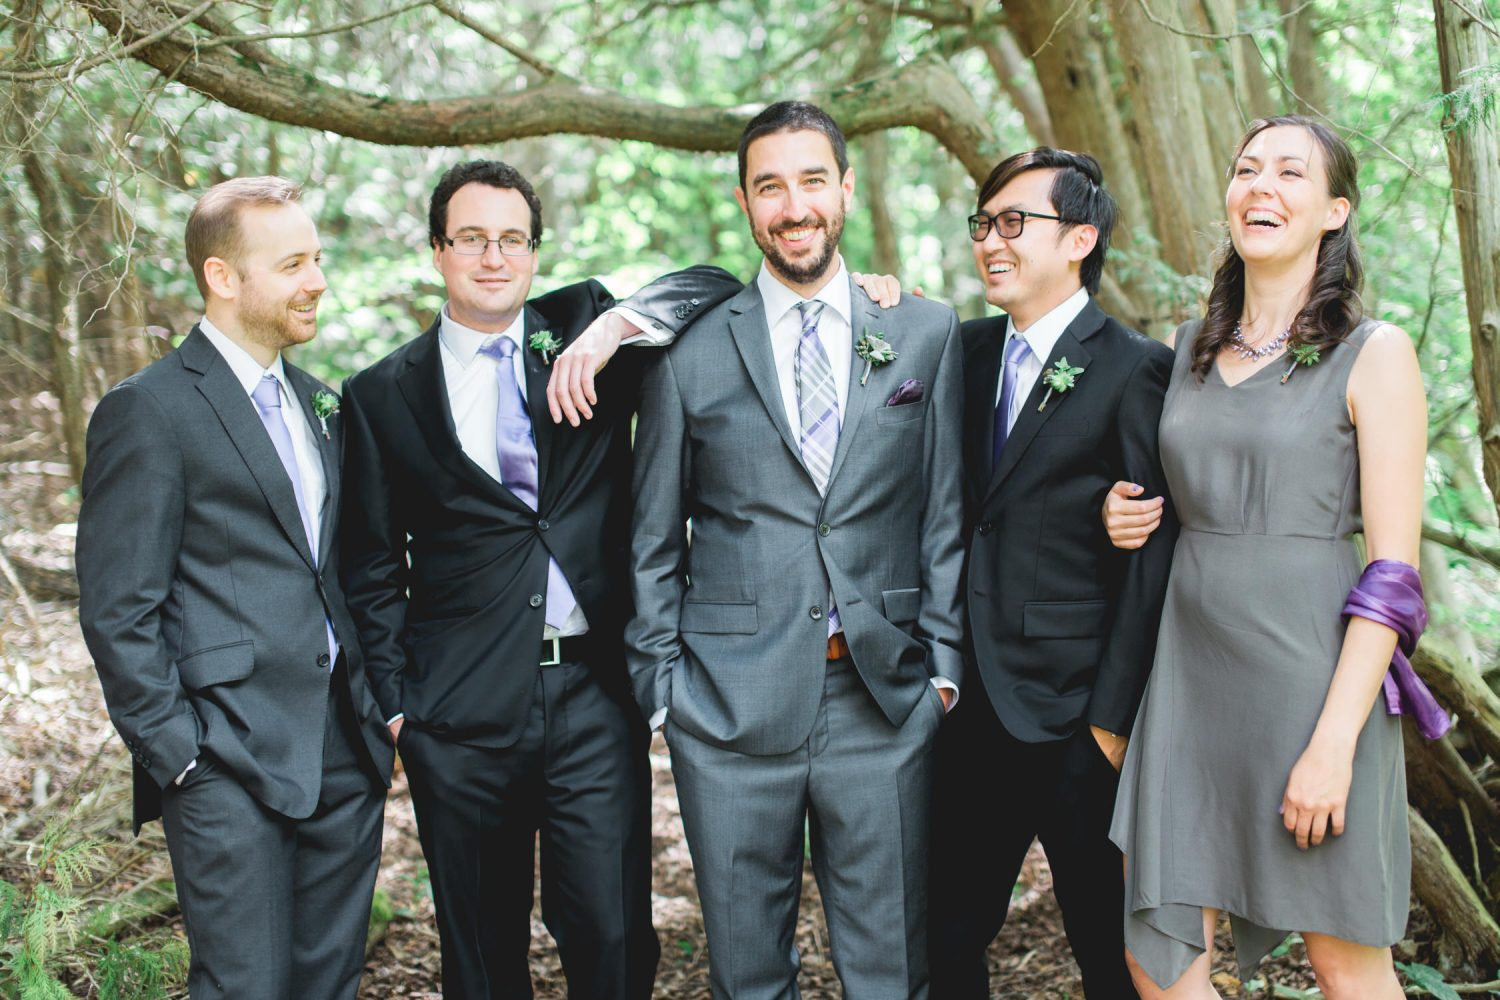 Groomsmen share a laugh with the groom